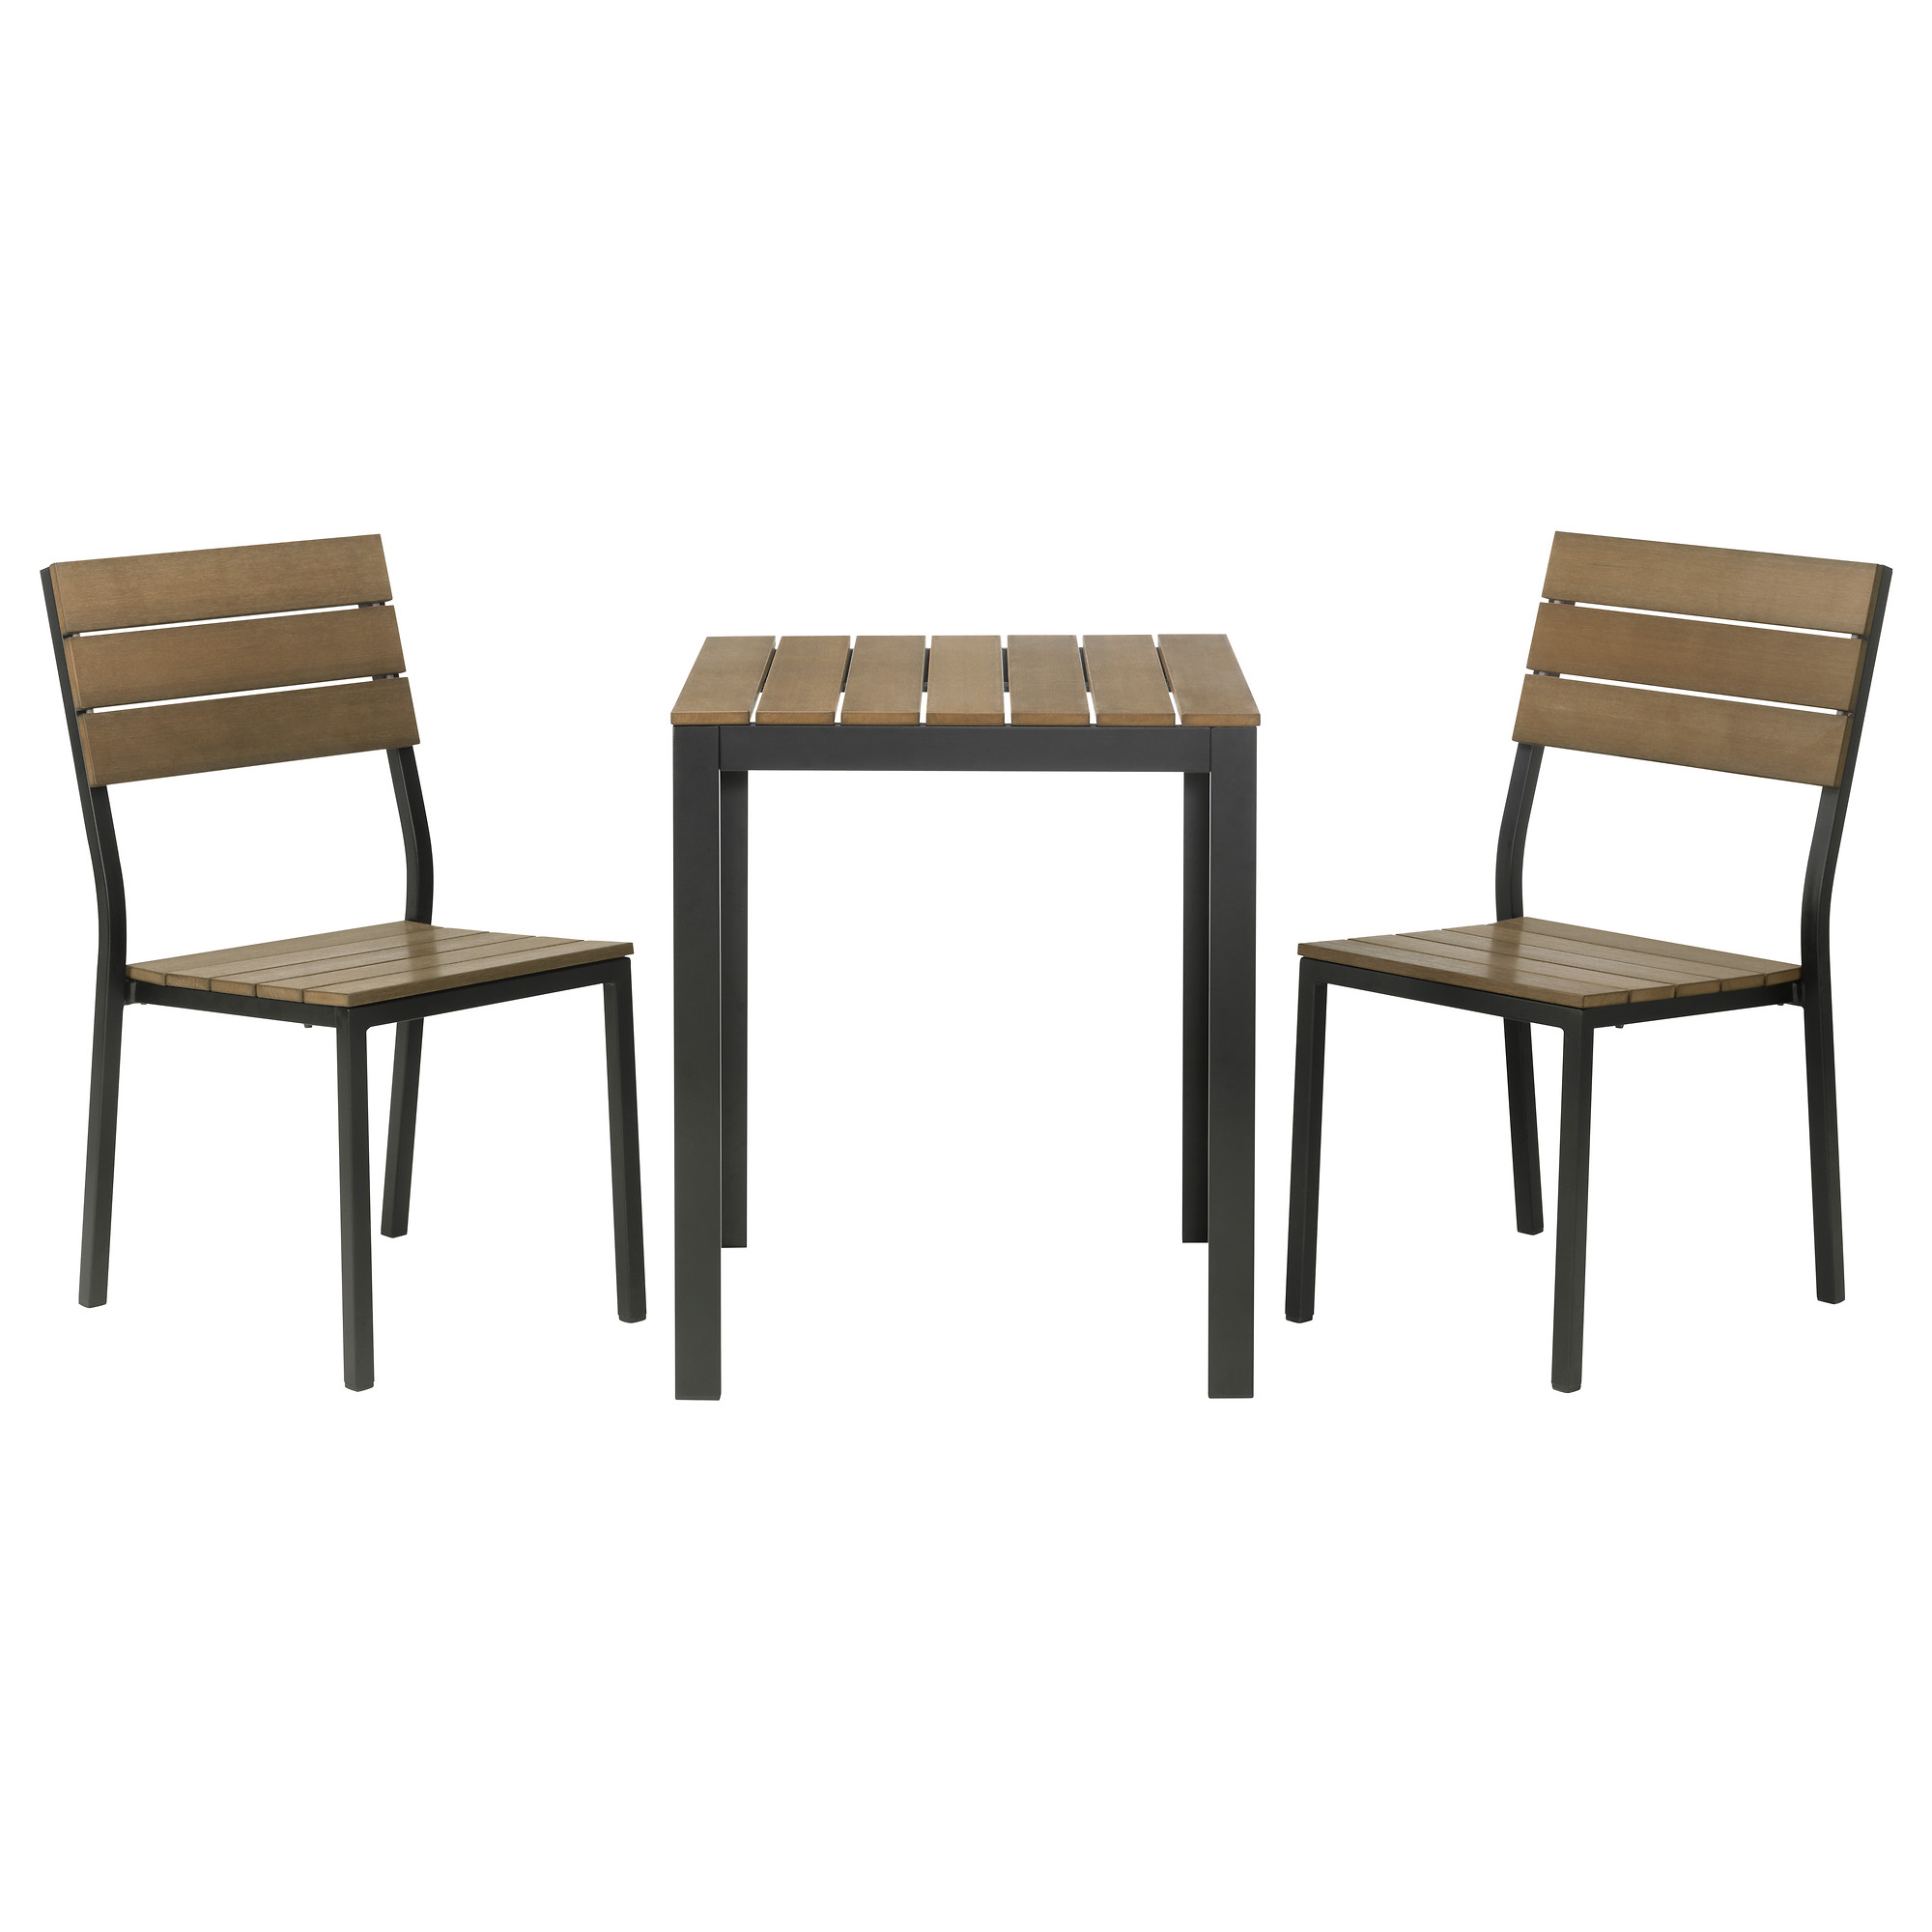 Simple Ikea Bistro Set Made Of Wood And Flat Iron With A Table And Two  Decorative